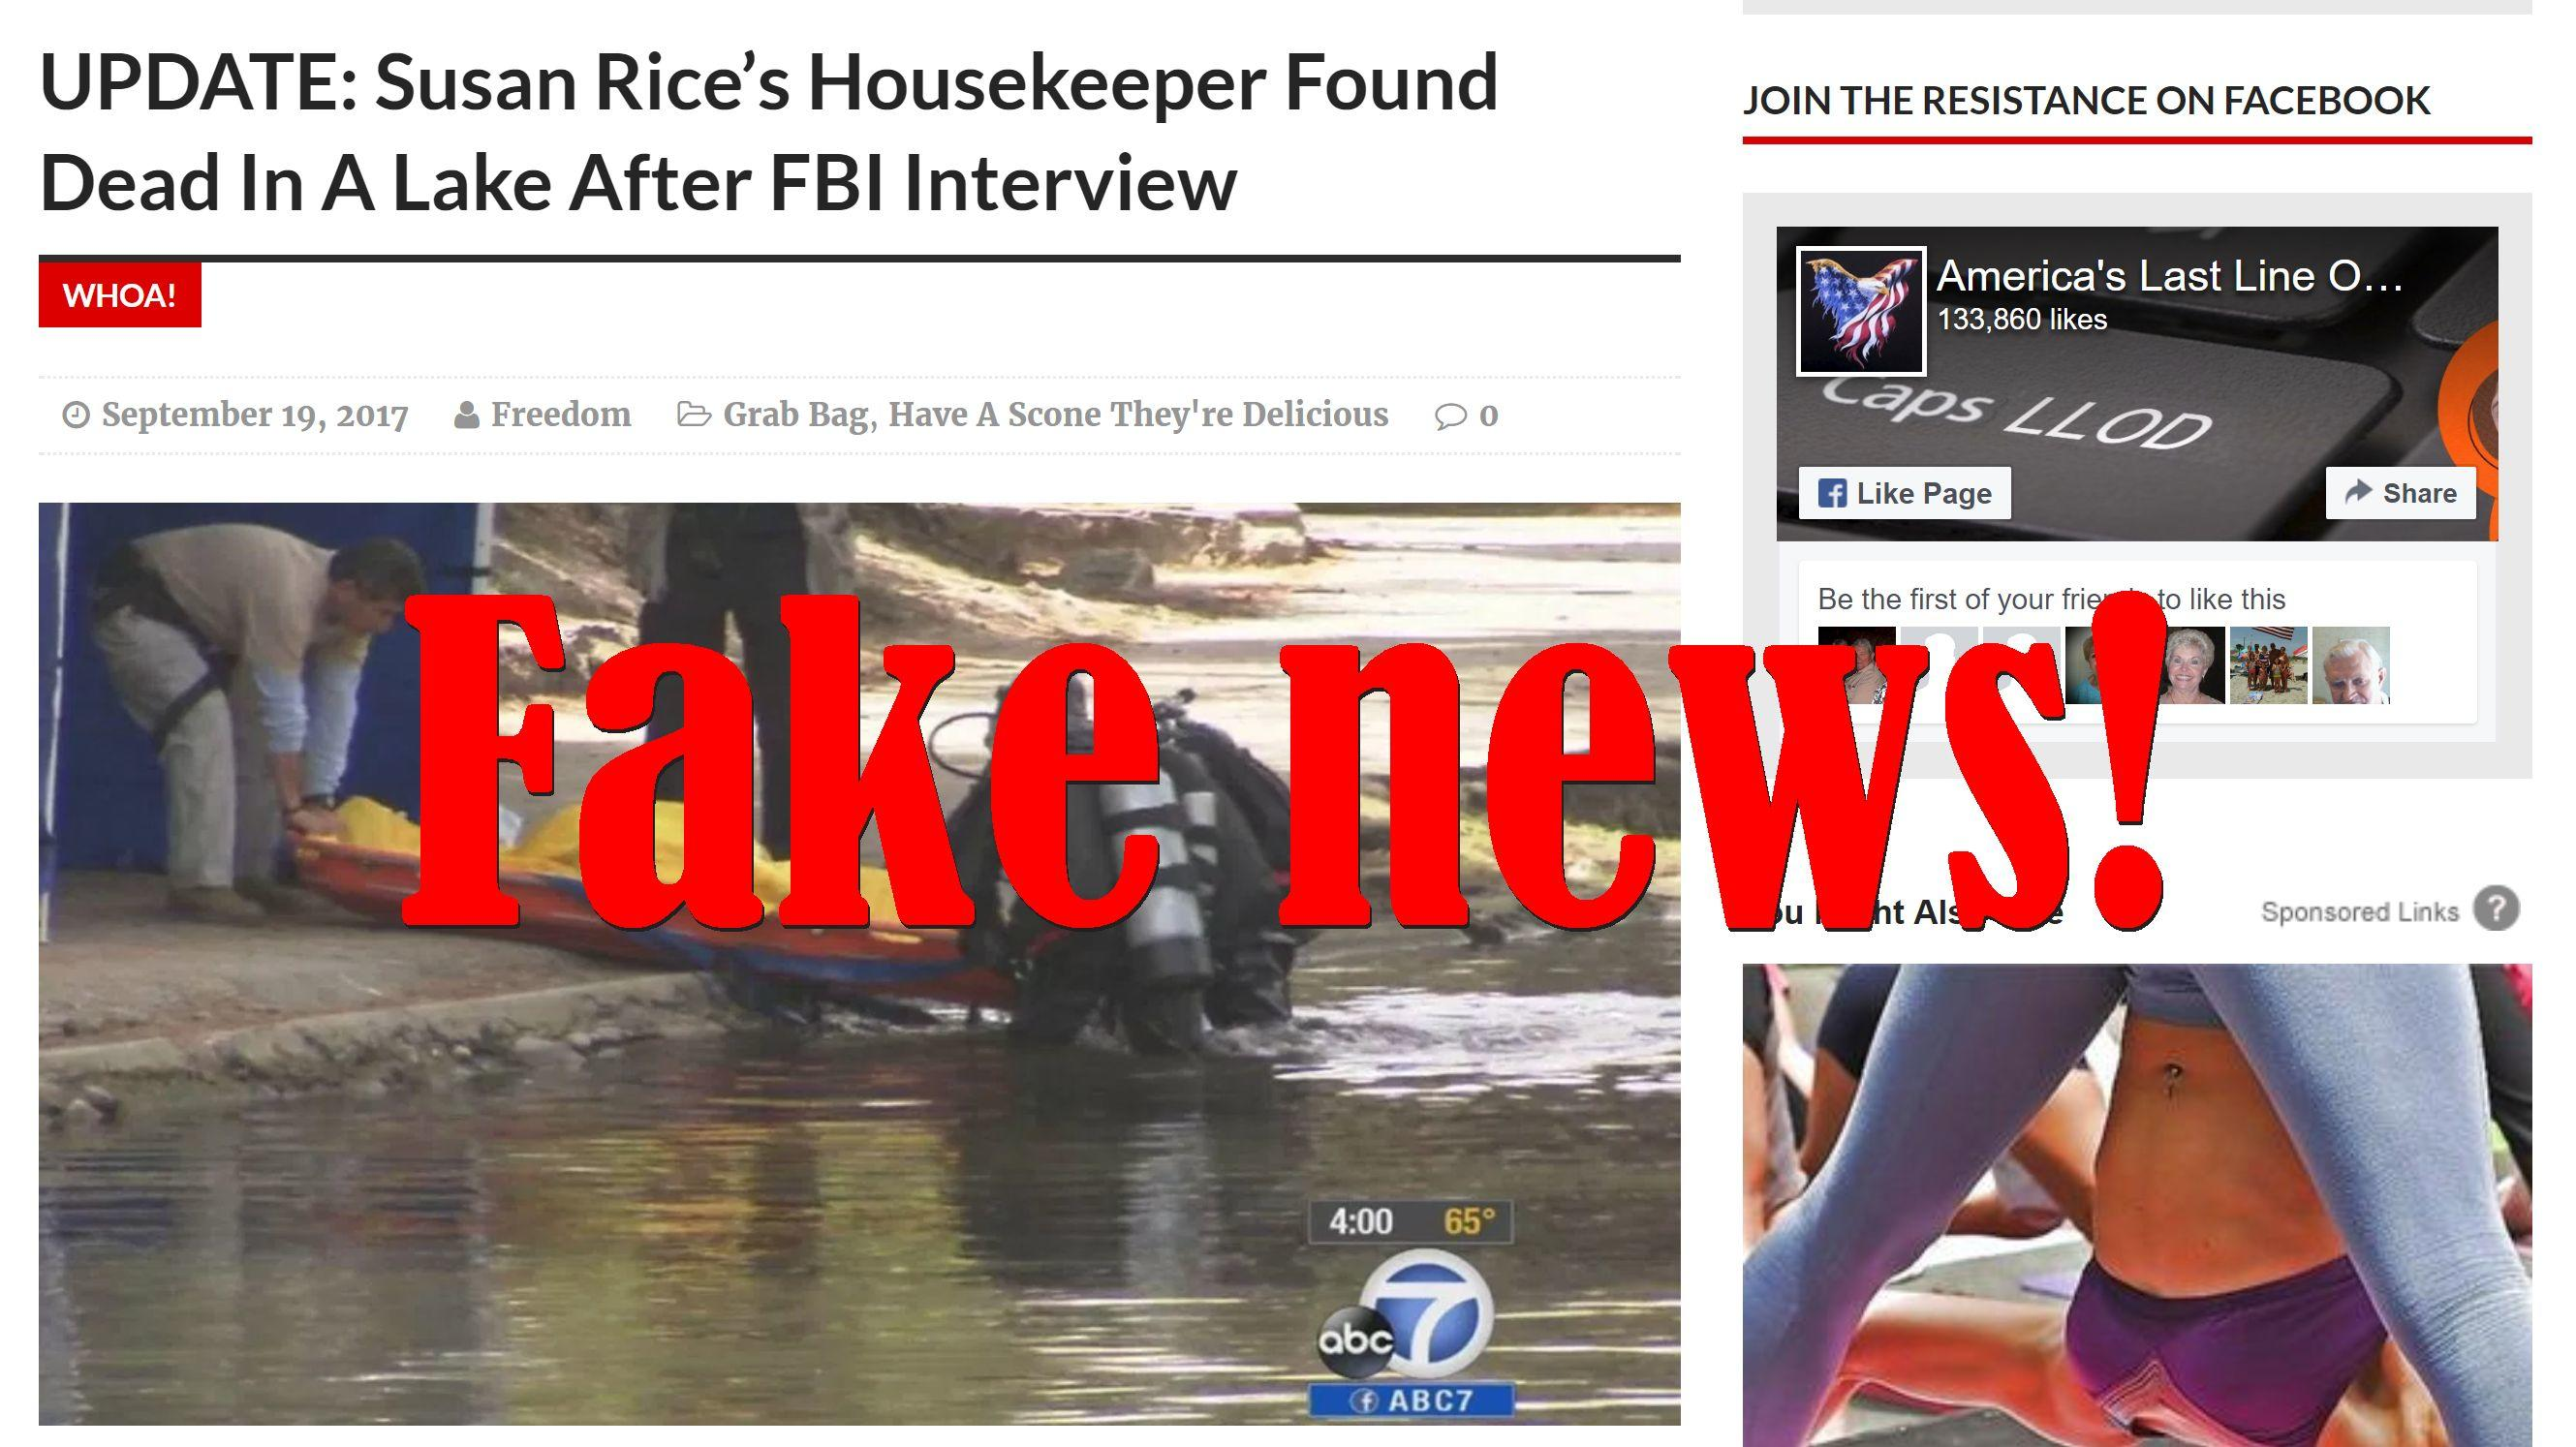 Fake News: Susan Rice Housekeeper NOT Found Dead In A Lake After FBI Interview